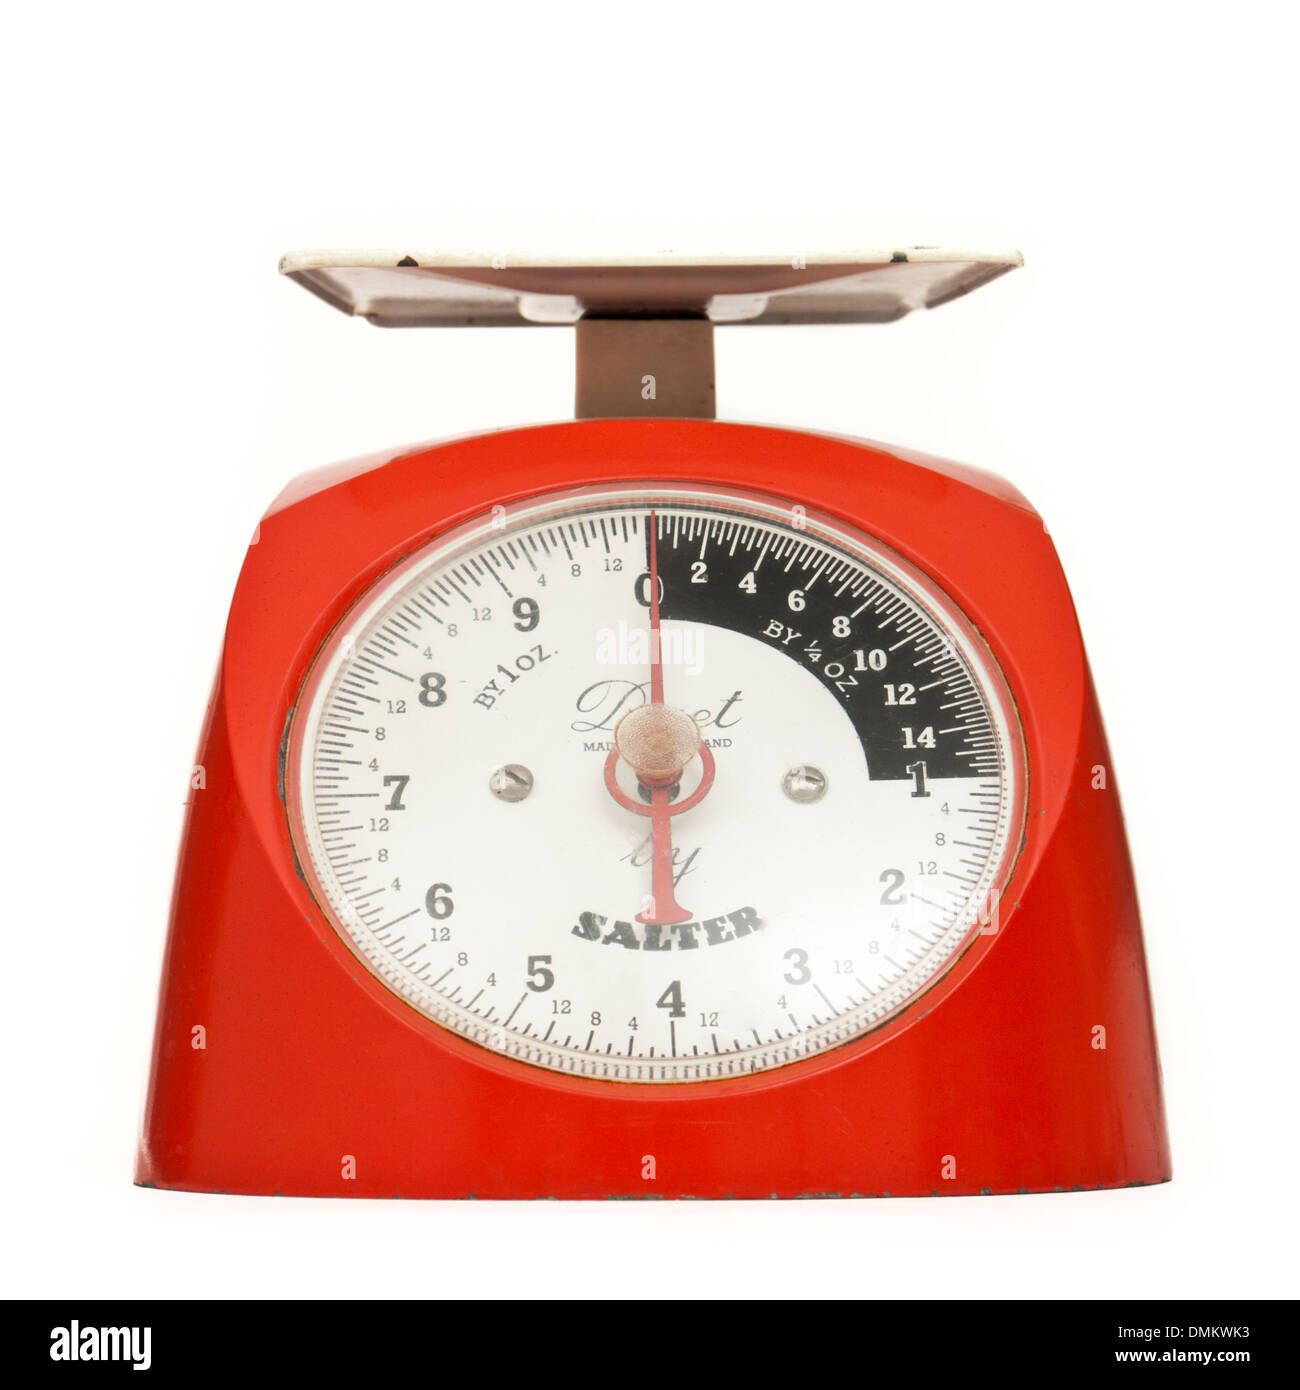 Vintage 1960's Salter 'Duet' manual kitchen weighing scales - Stock Image